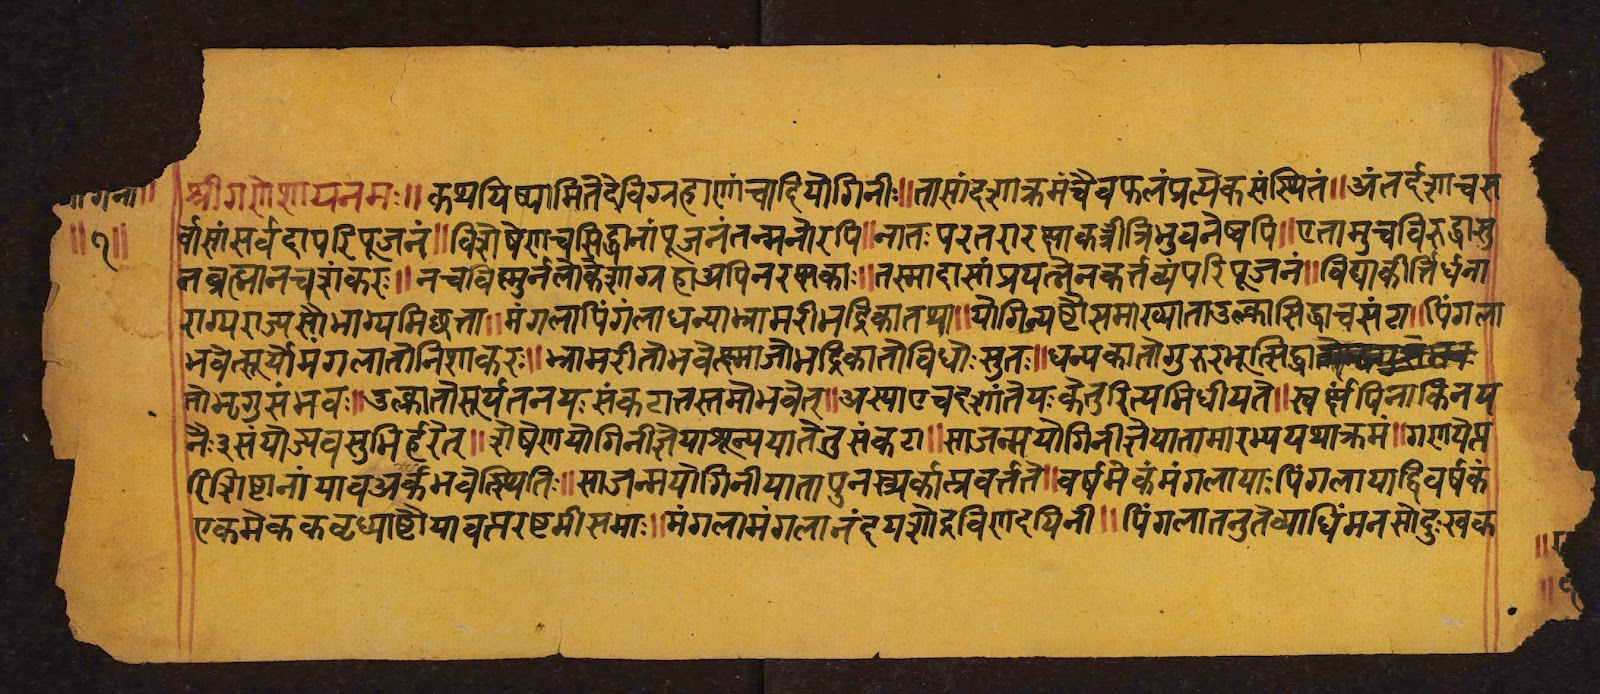 Sanskrit Of The Vedas Vs Modern Sanskrit: Sanskrit India's Ancient Language And Its European Link